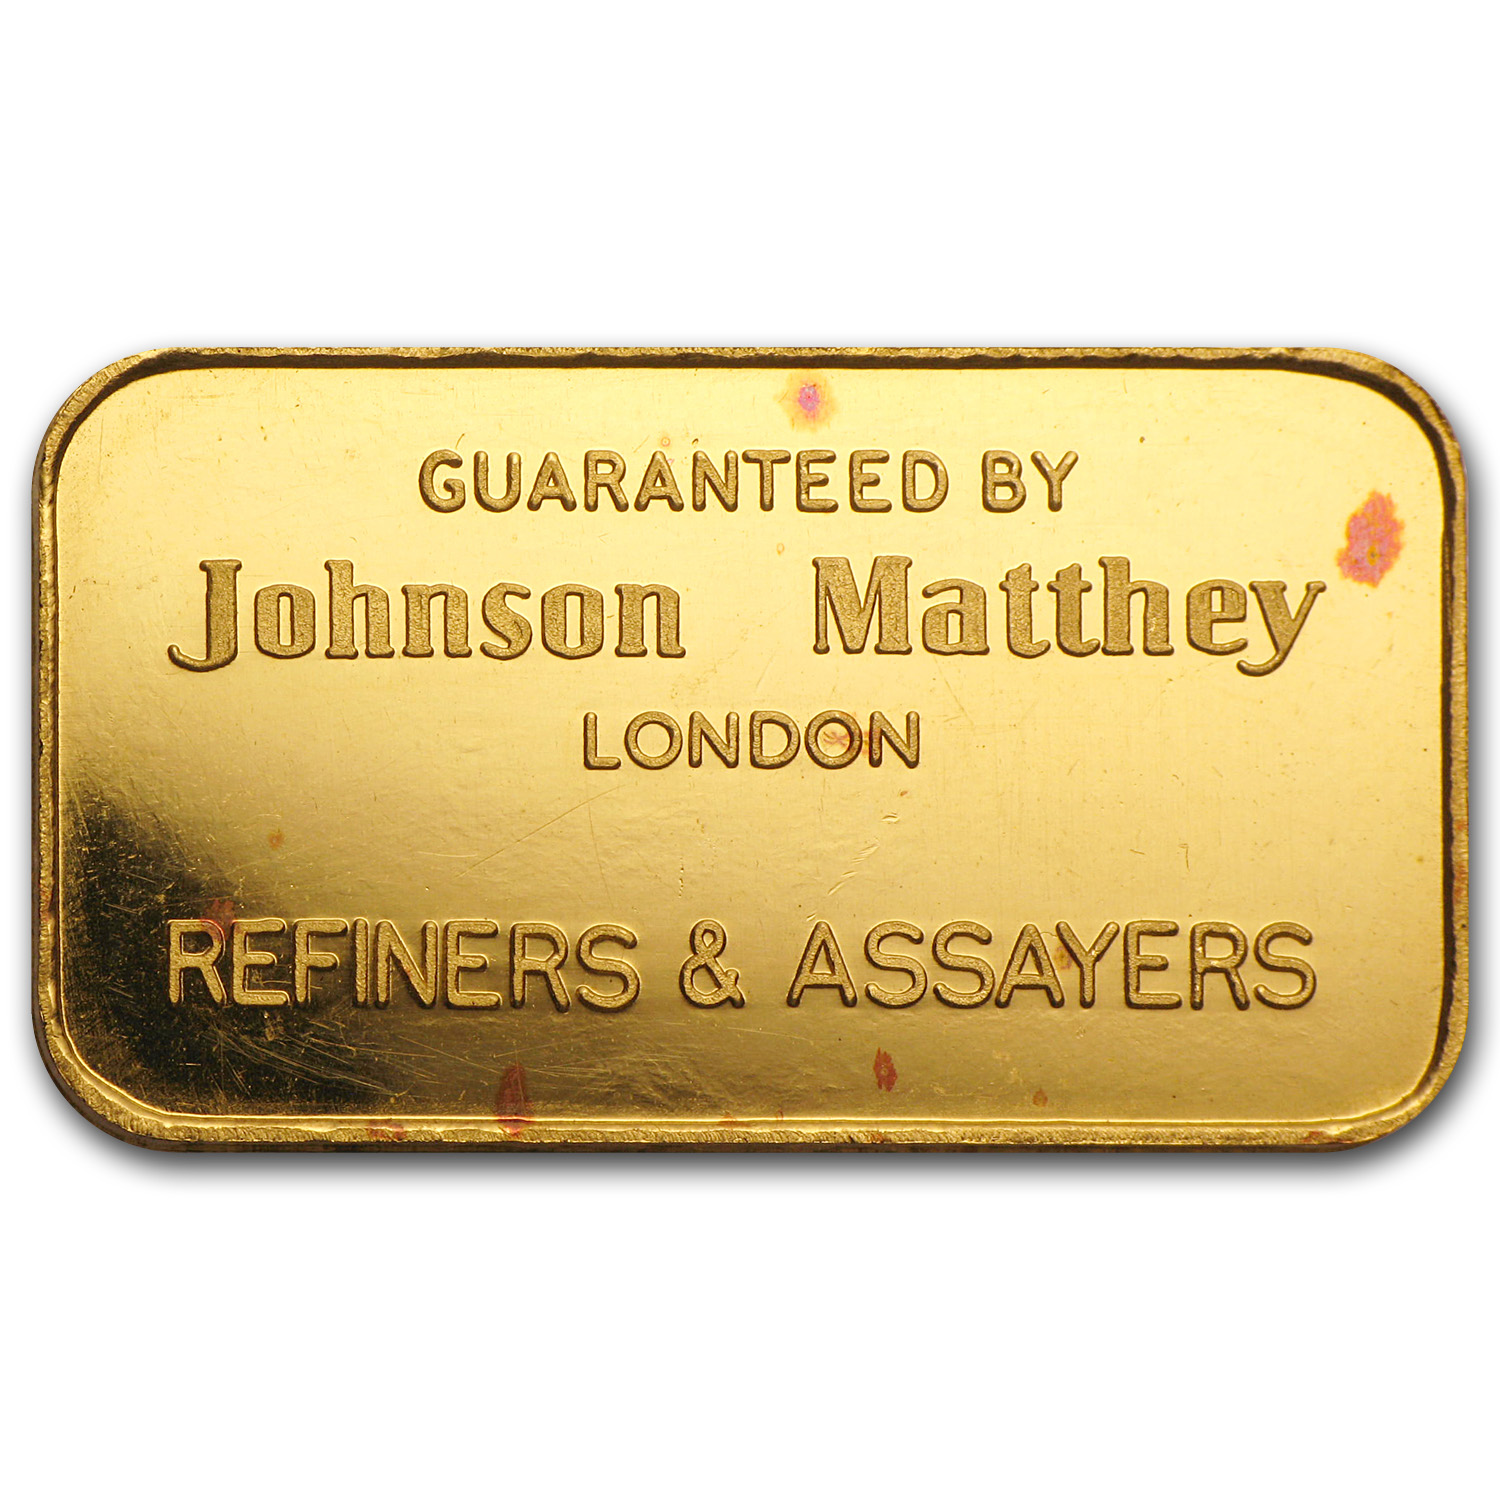 1 oz Gold Bars - Johnson Matthey (RNB, London)